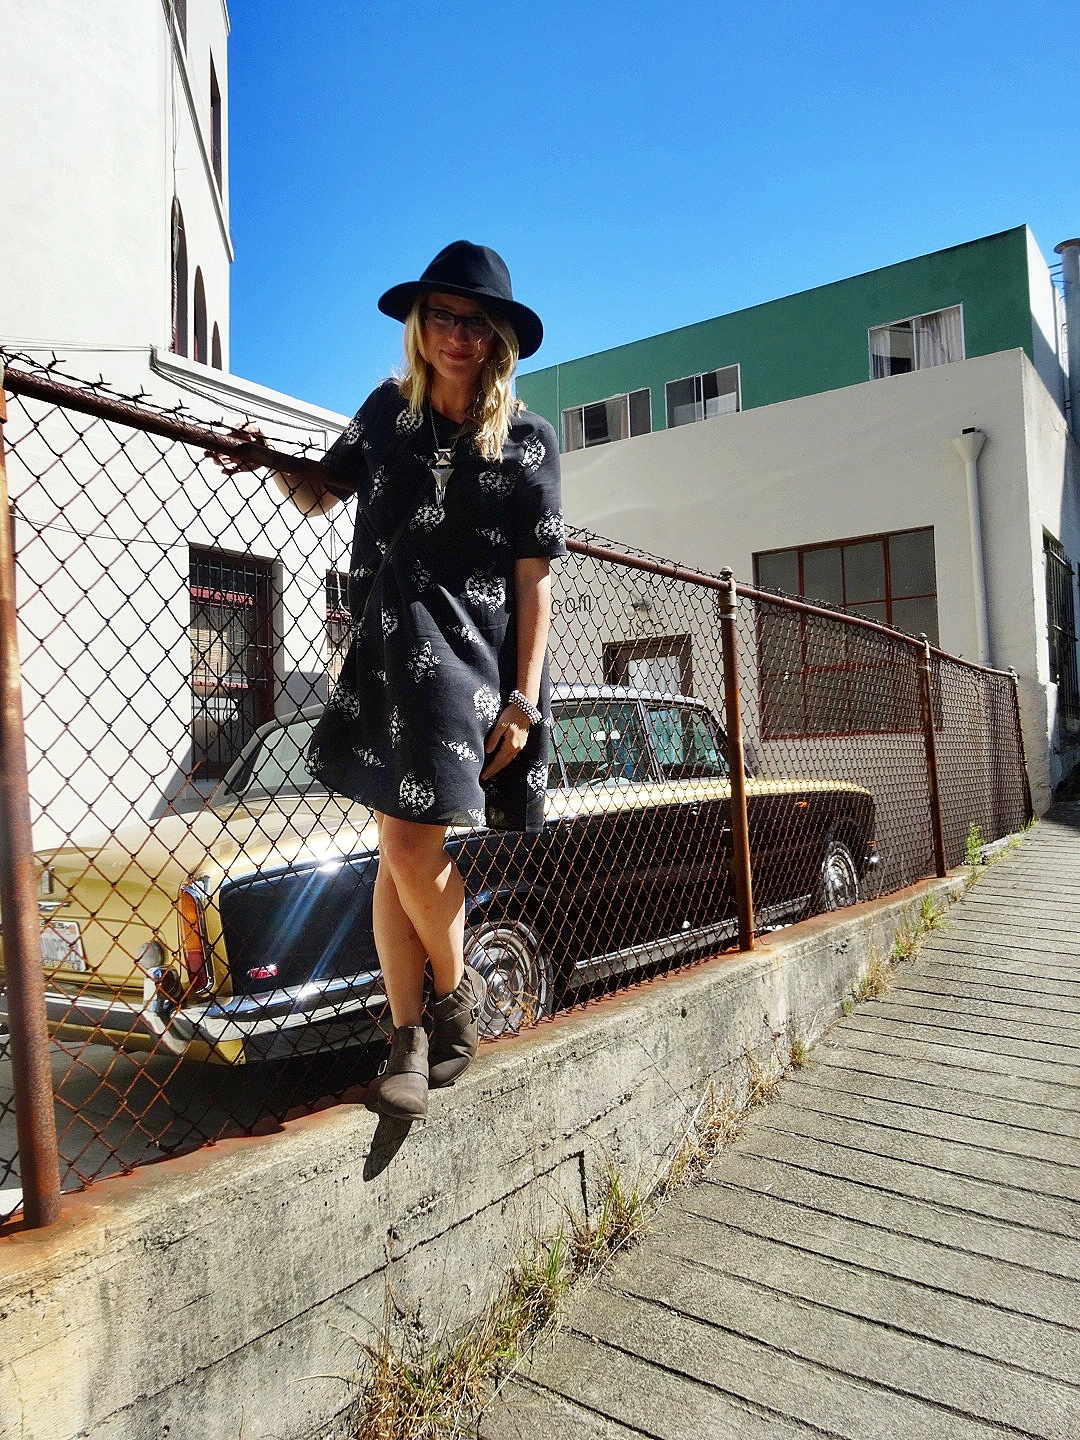 Dress: H&M | Necklace: H&M | Boots: Hats of the Fillmore | Shoes: F21